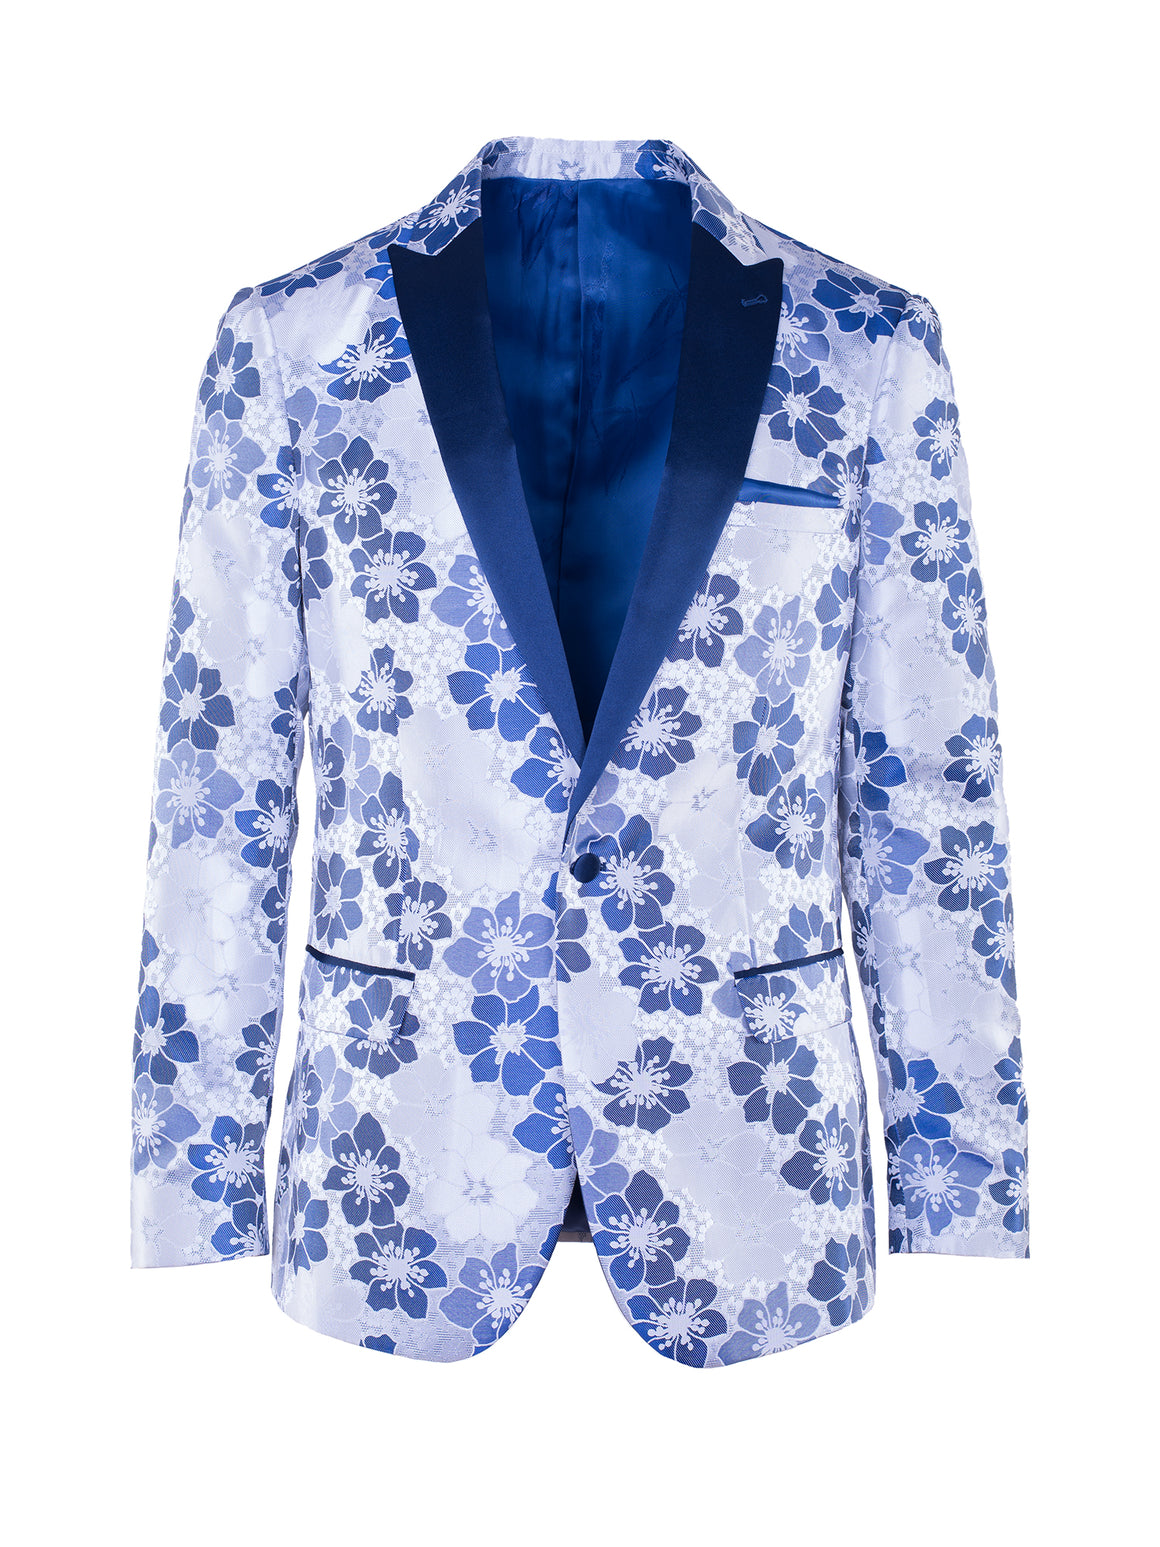 Grosvenor Peak Tuxedo Jacket - White & Blue Floral Jacquard